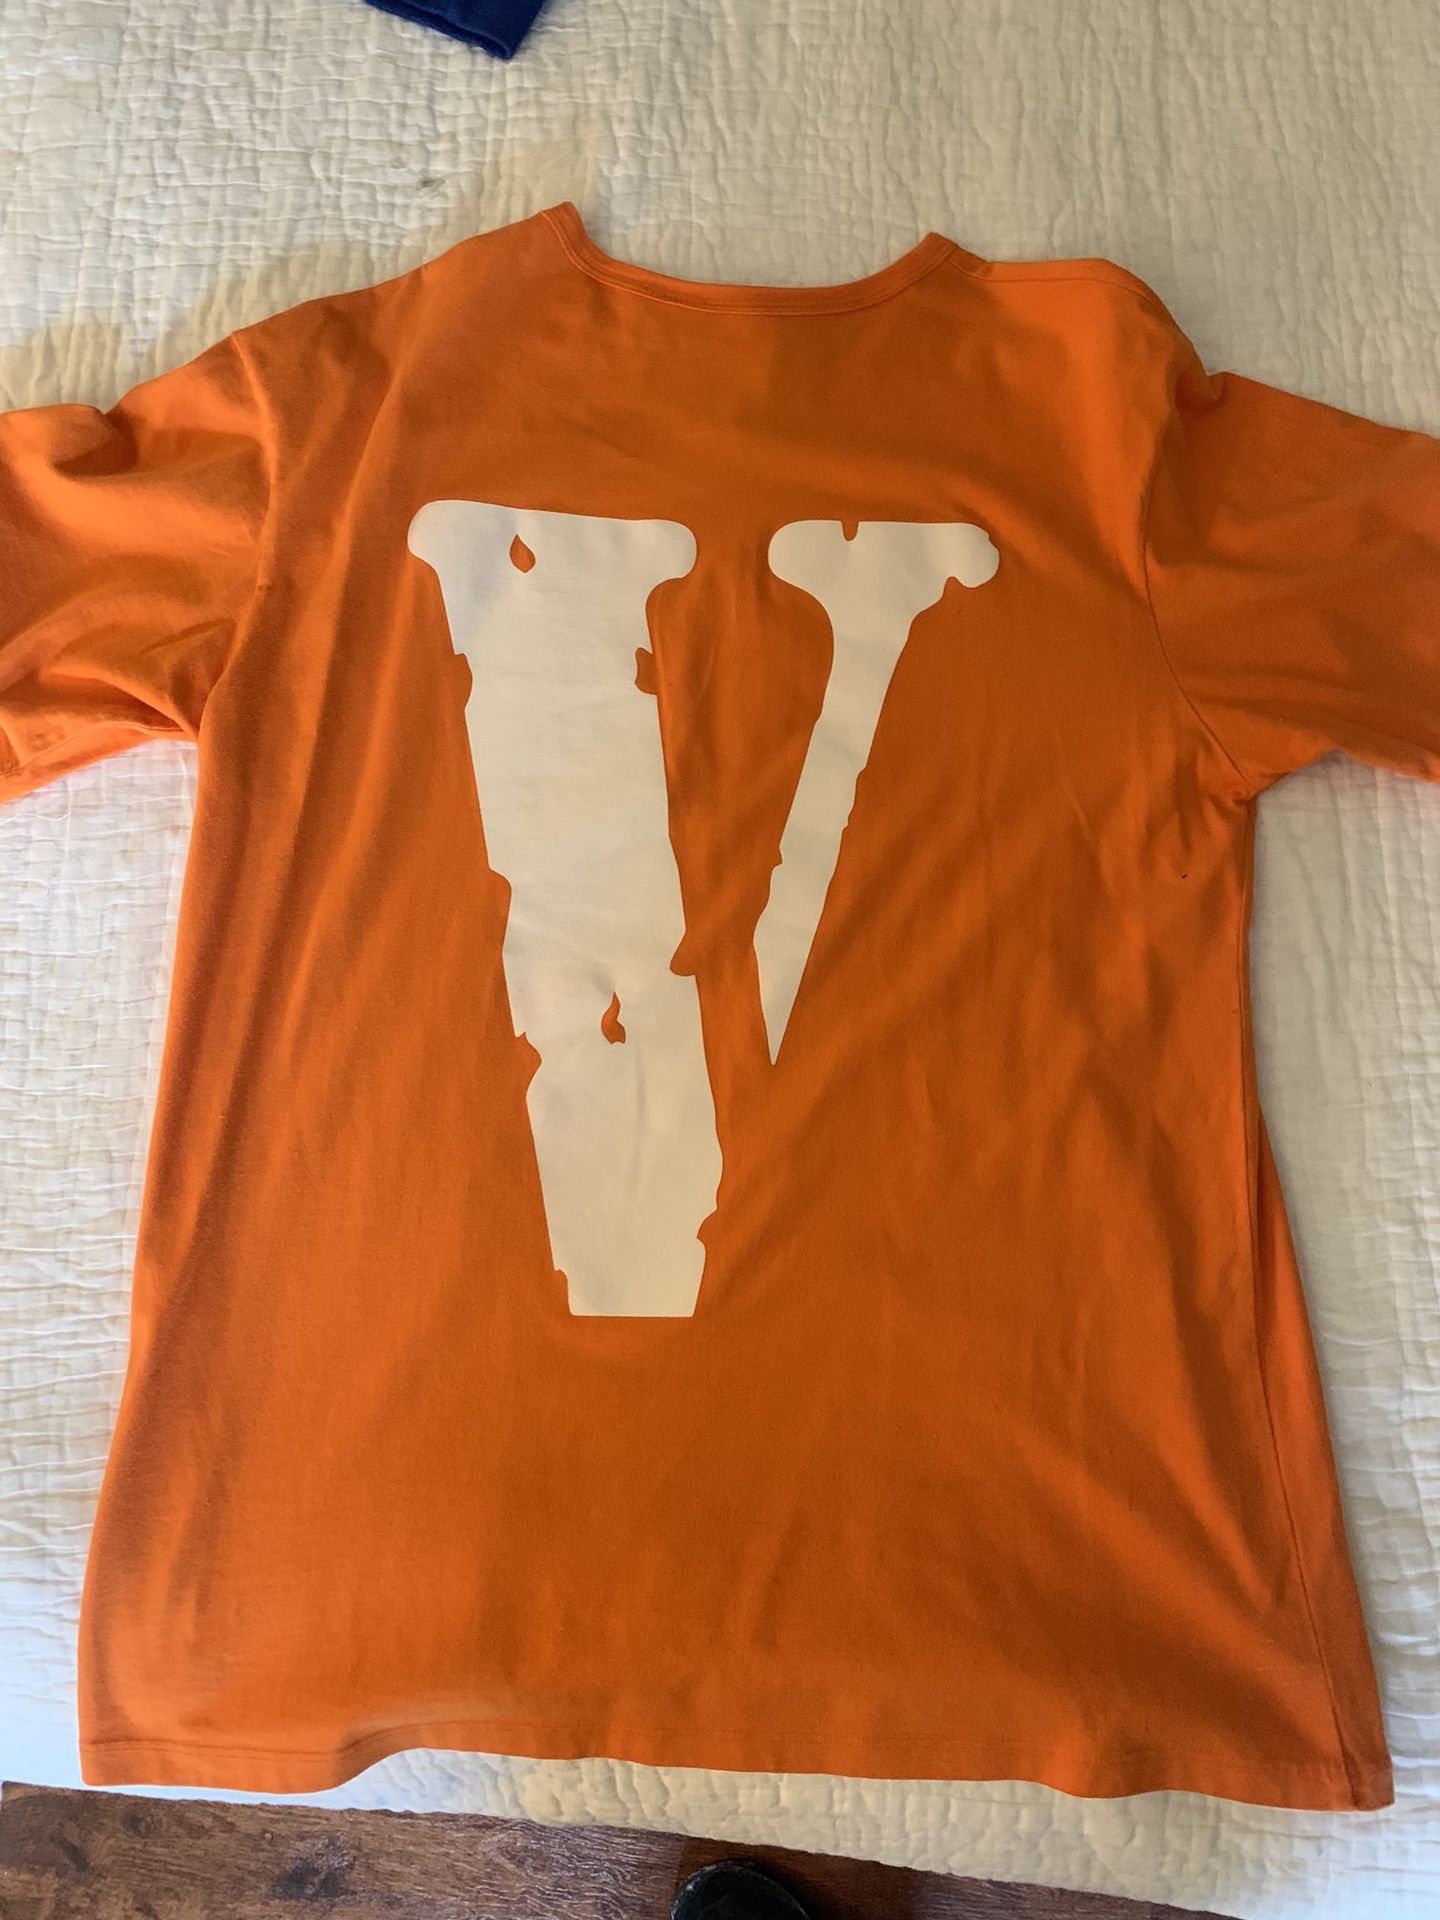 V lone Texas SXSW pop up shop edition - RARE size M but fits like L